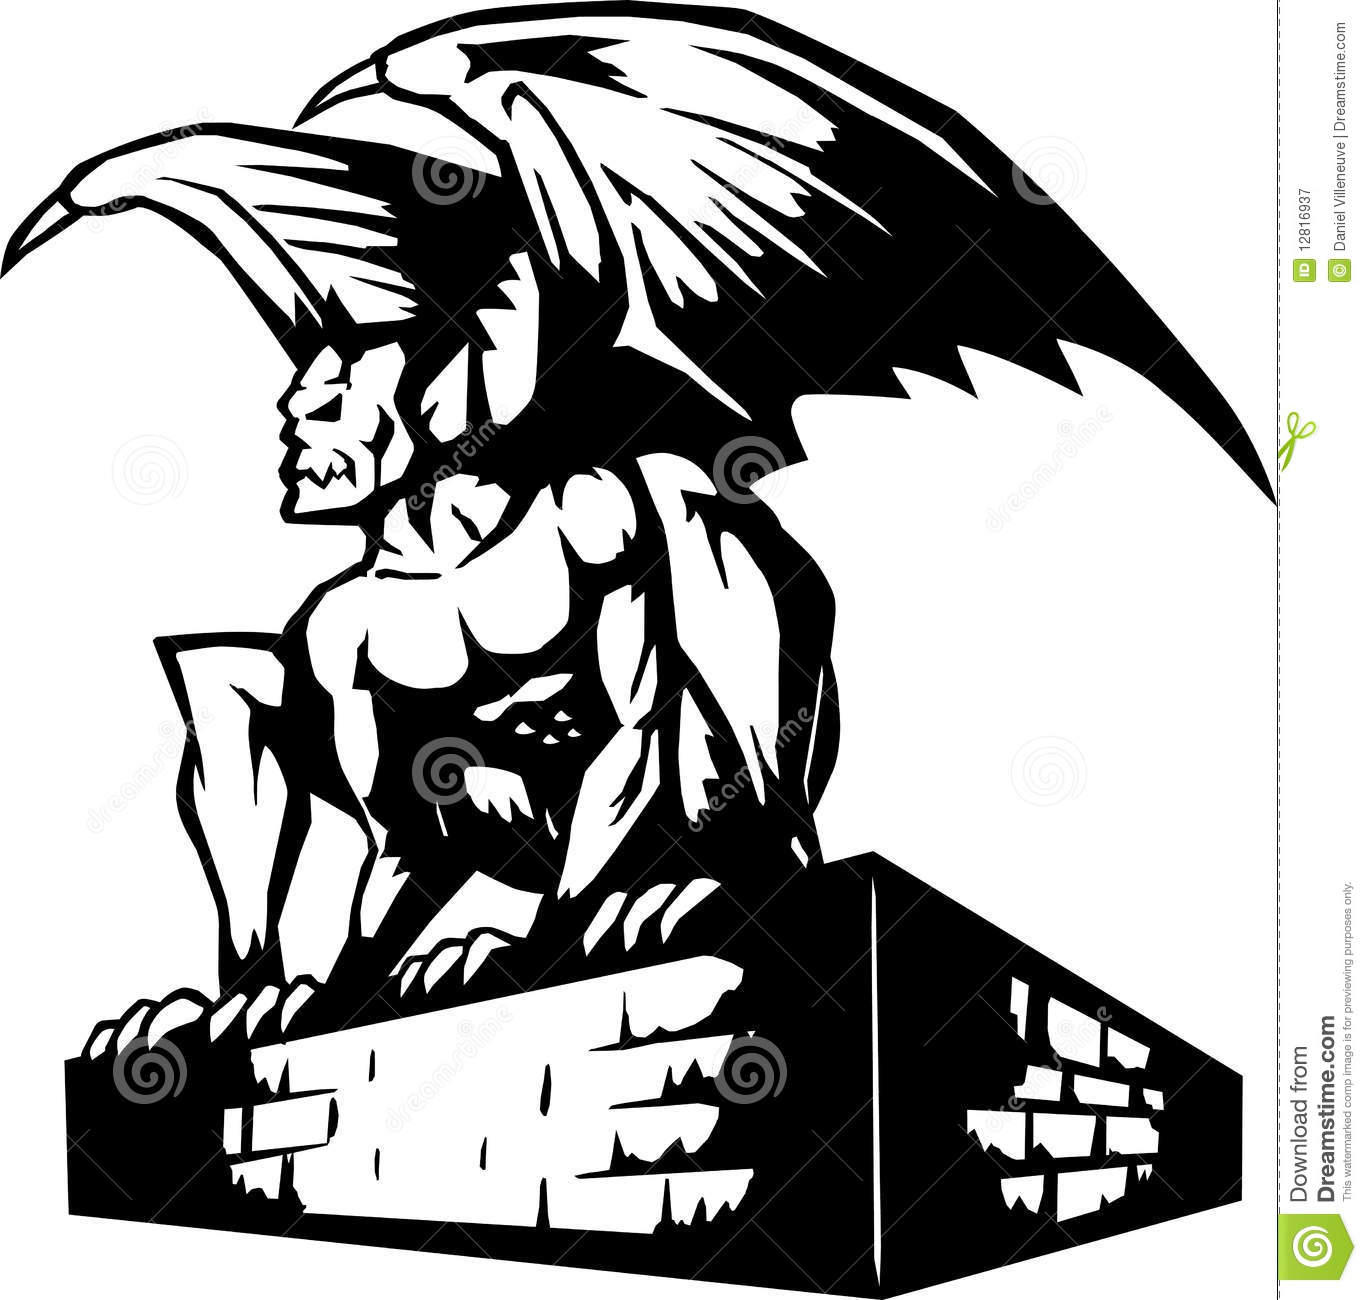 hight resolution of gargoyle icon stock illustrations 59 gargoyle icon stock illustrations vectors clipart dreamstime